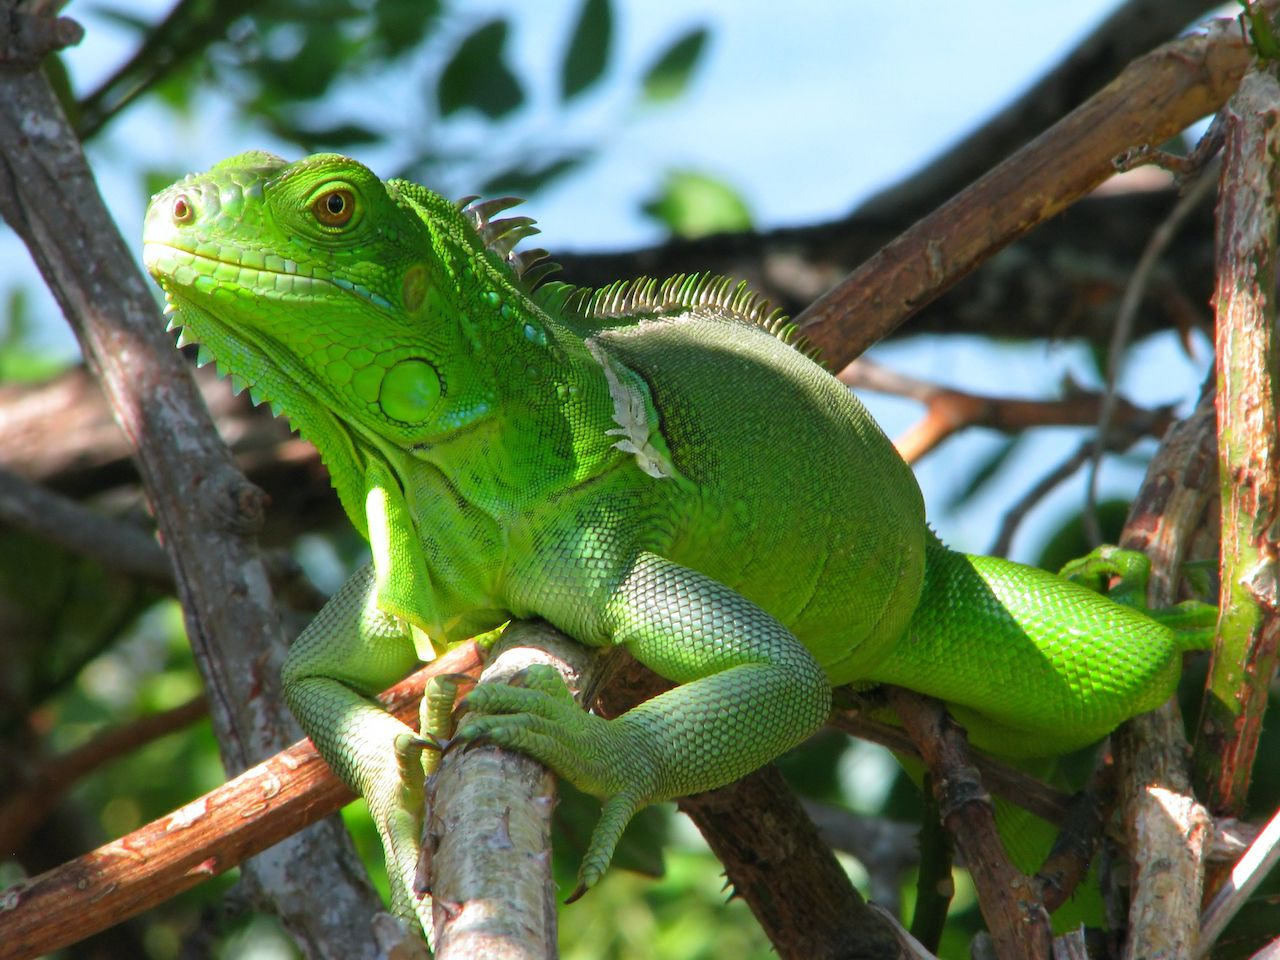 Iguanas fall from trees in Florida